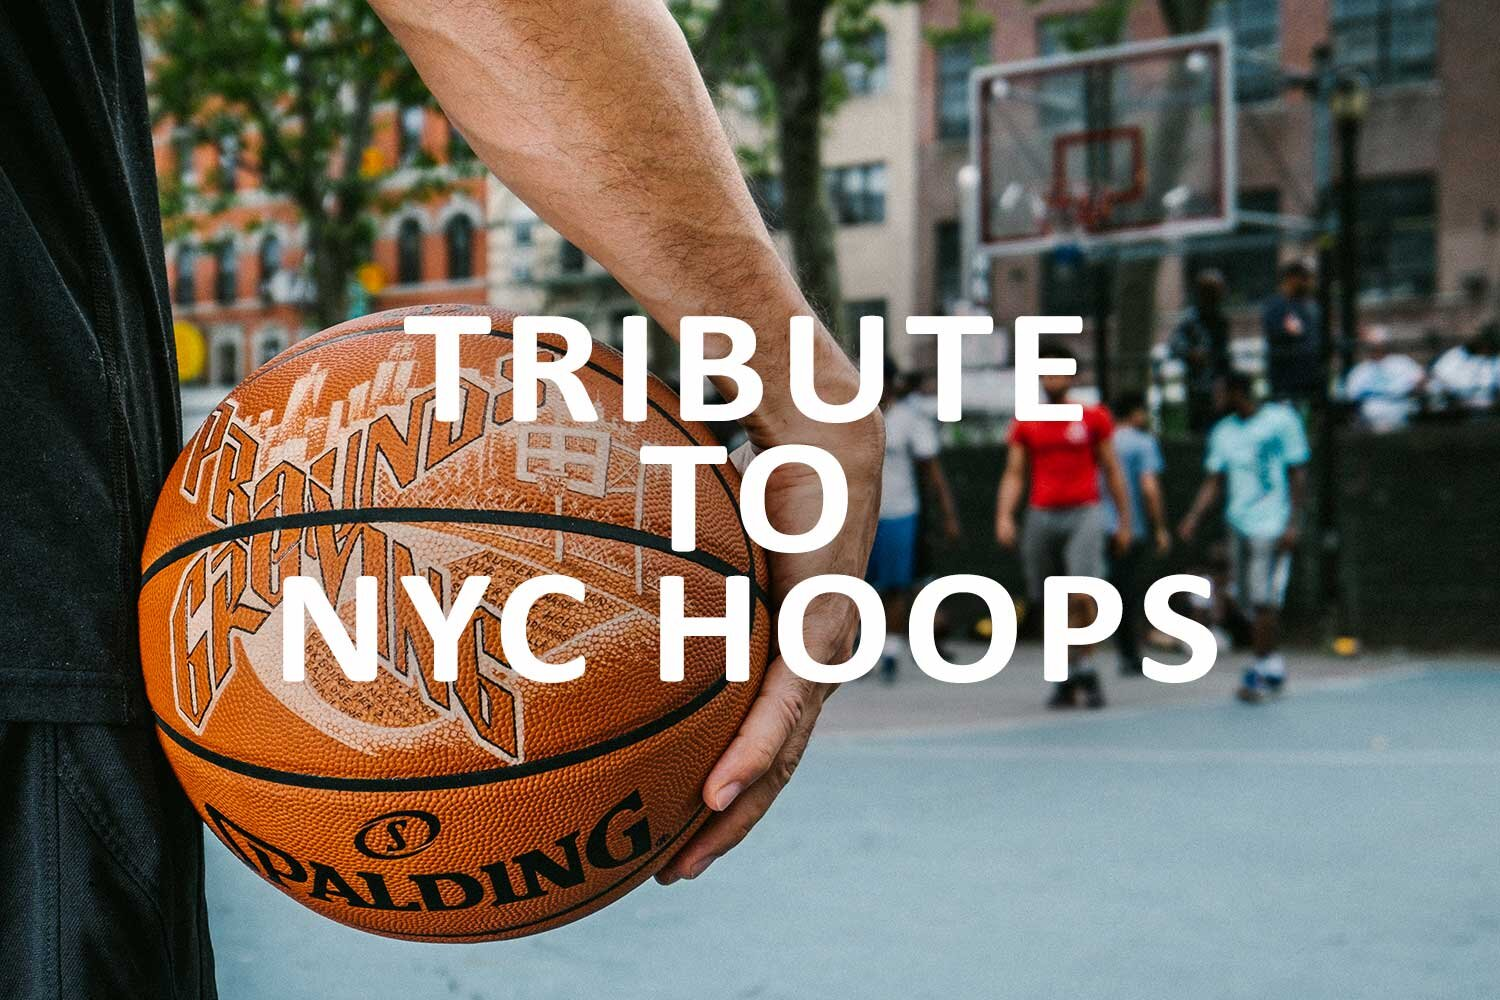 Tribute to NYC Hoops link